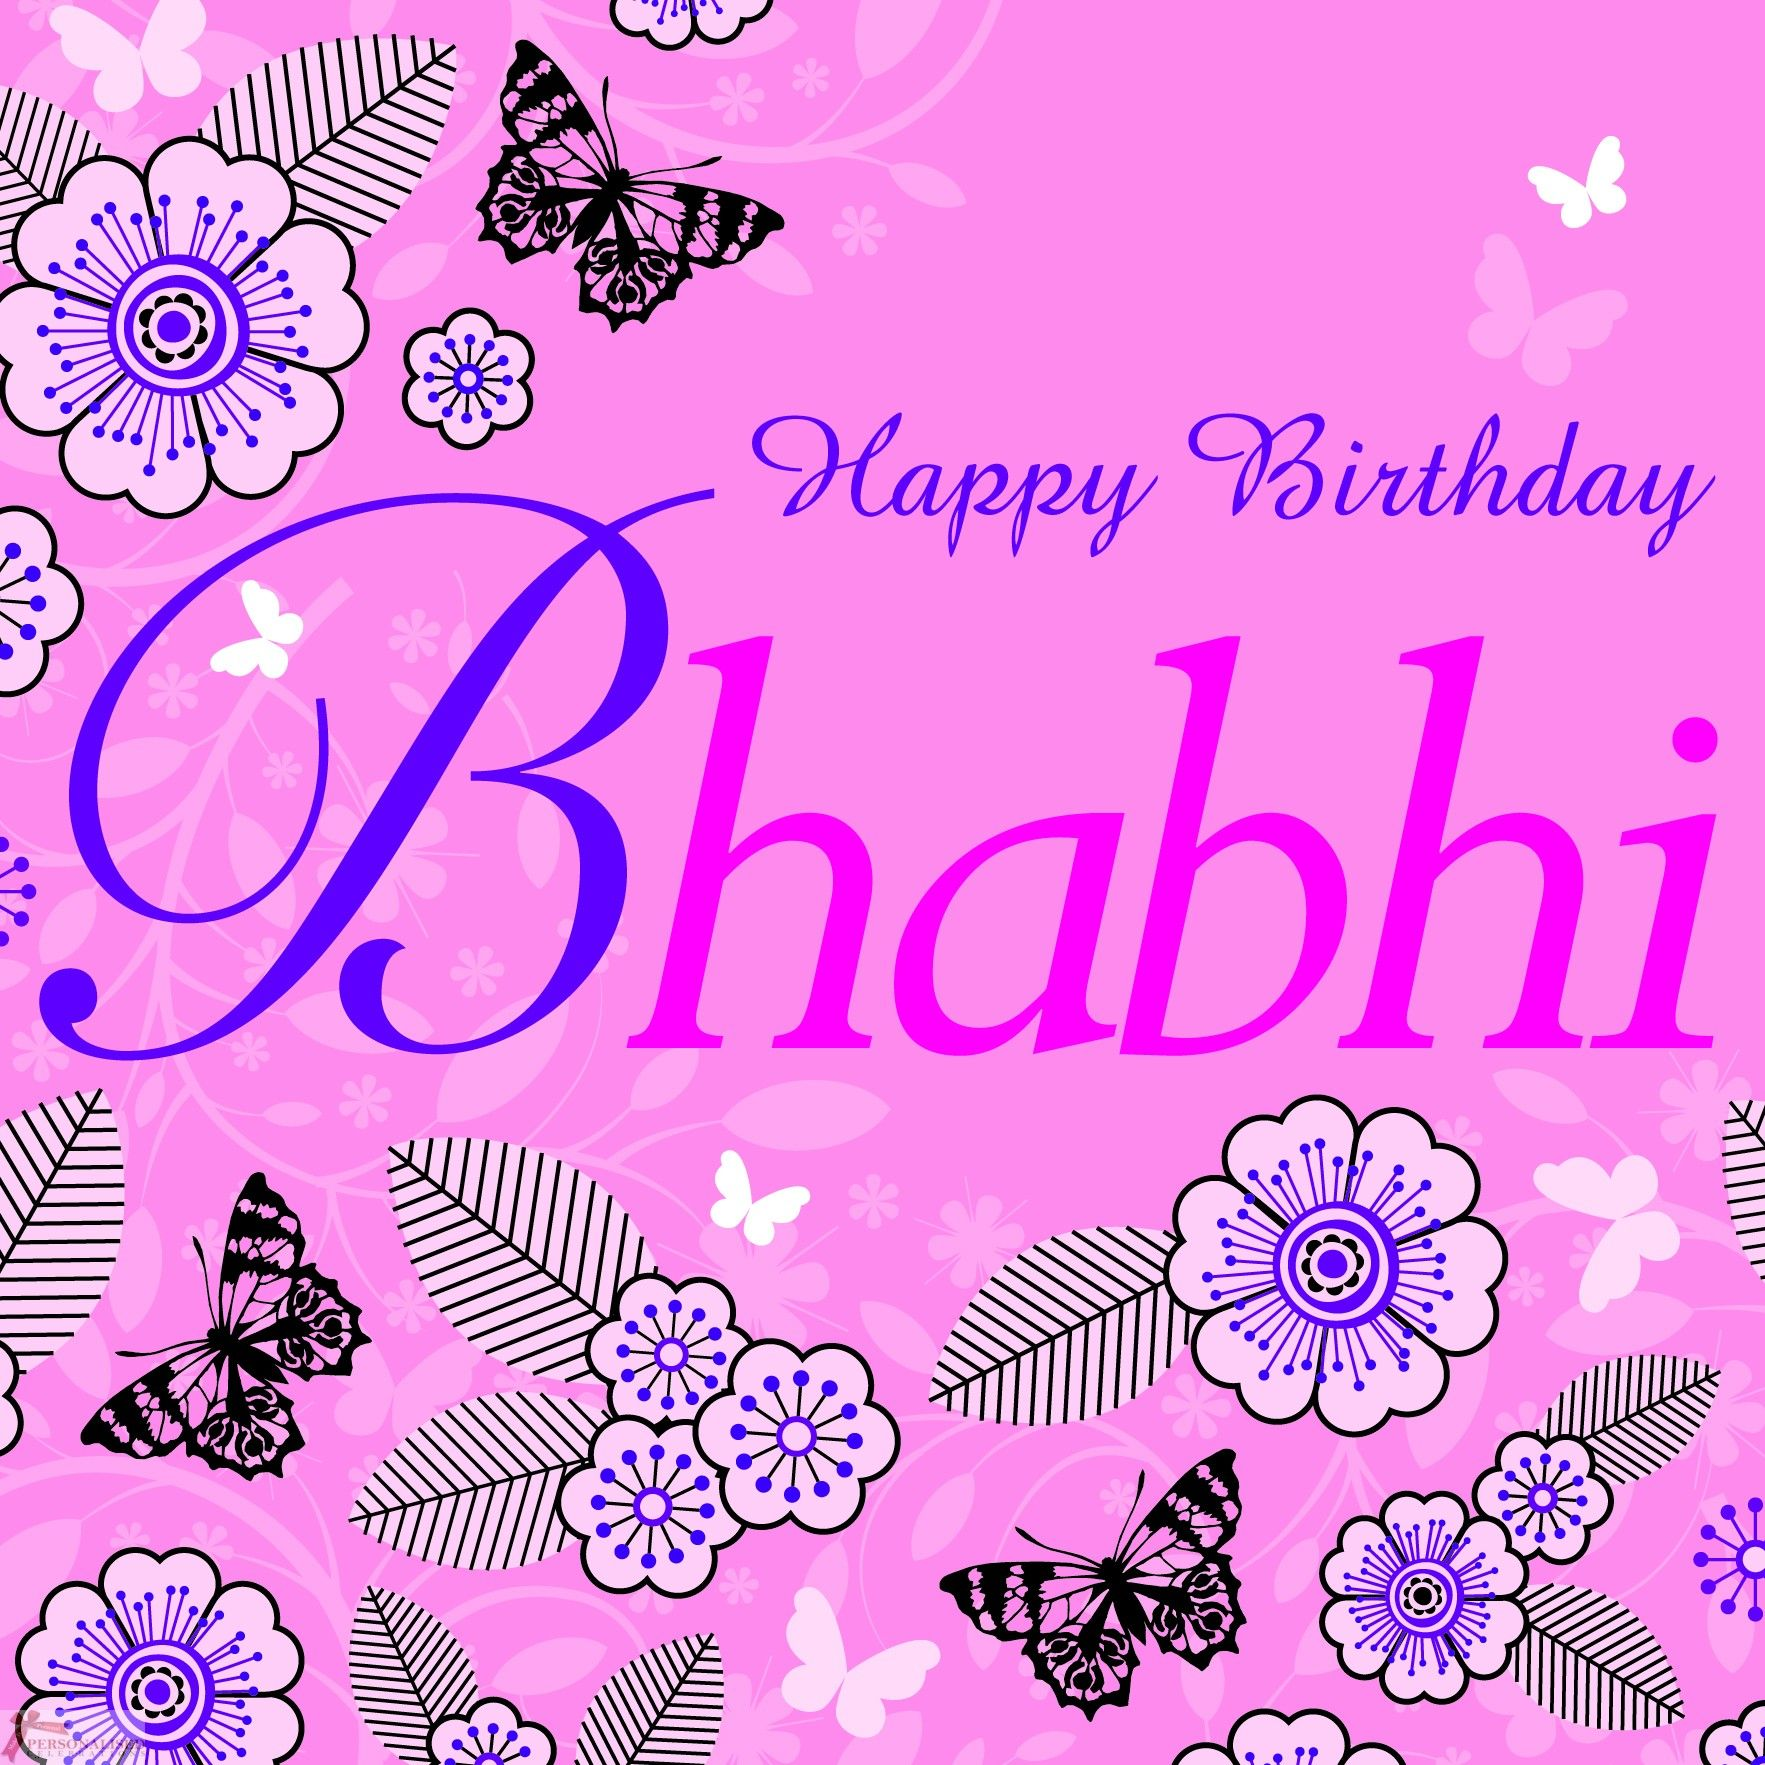 check out happy birthday bhabhi quotes images pictures